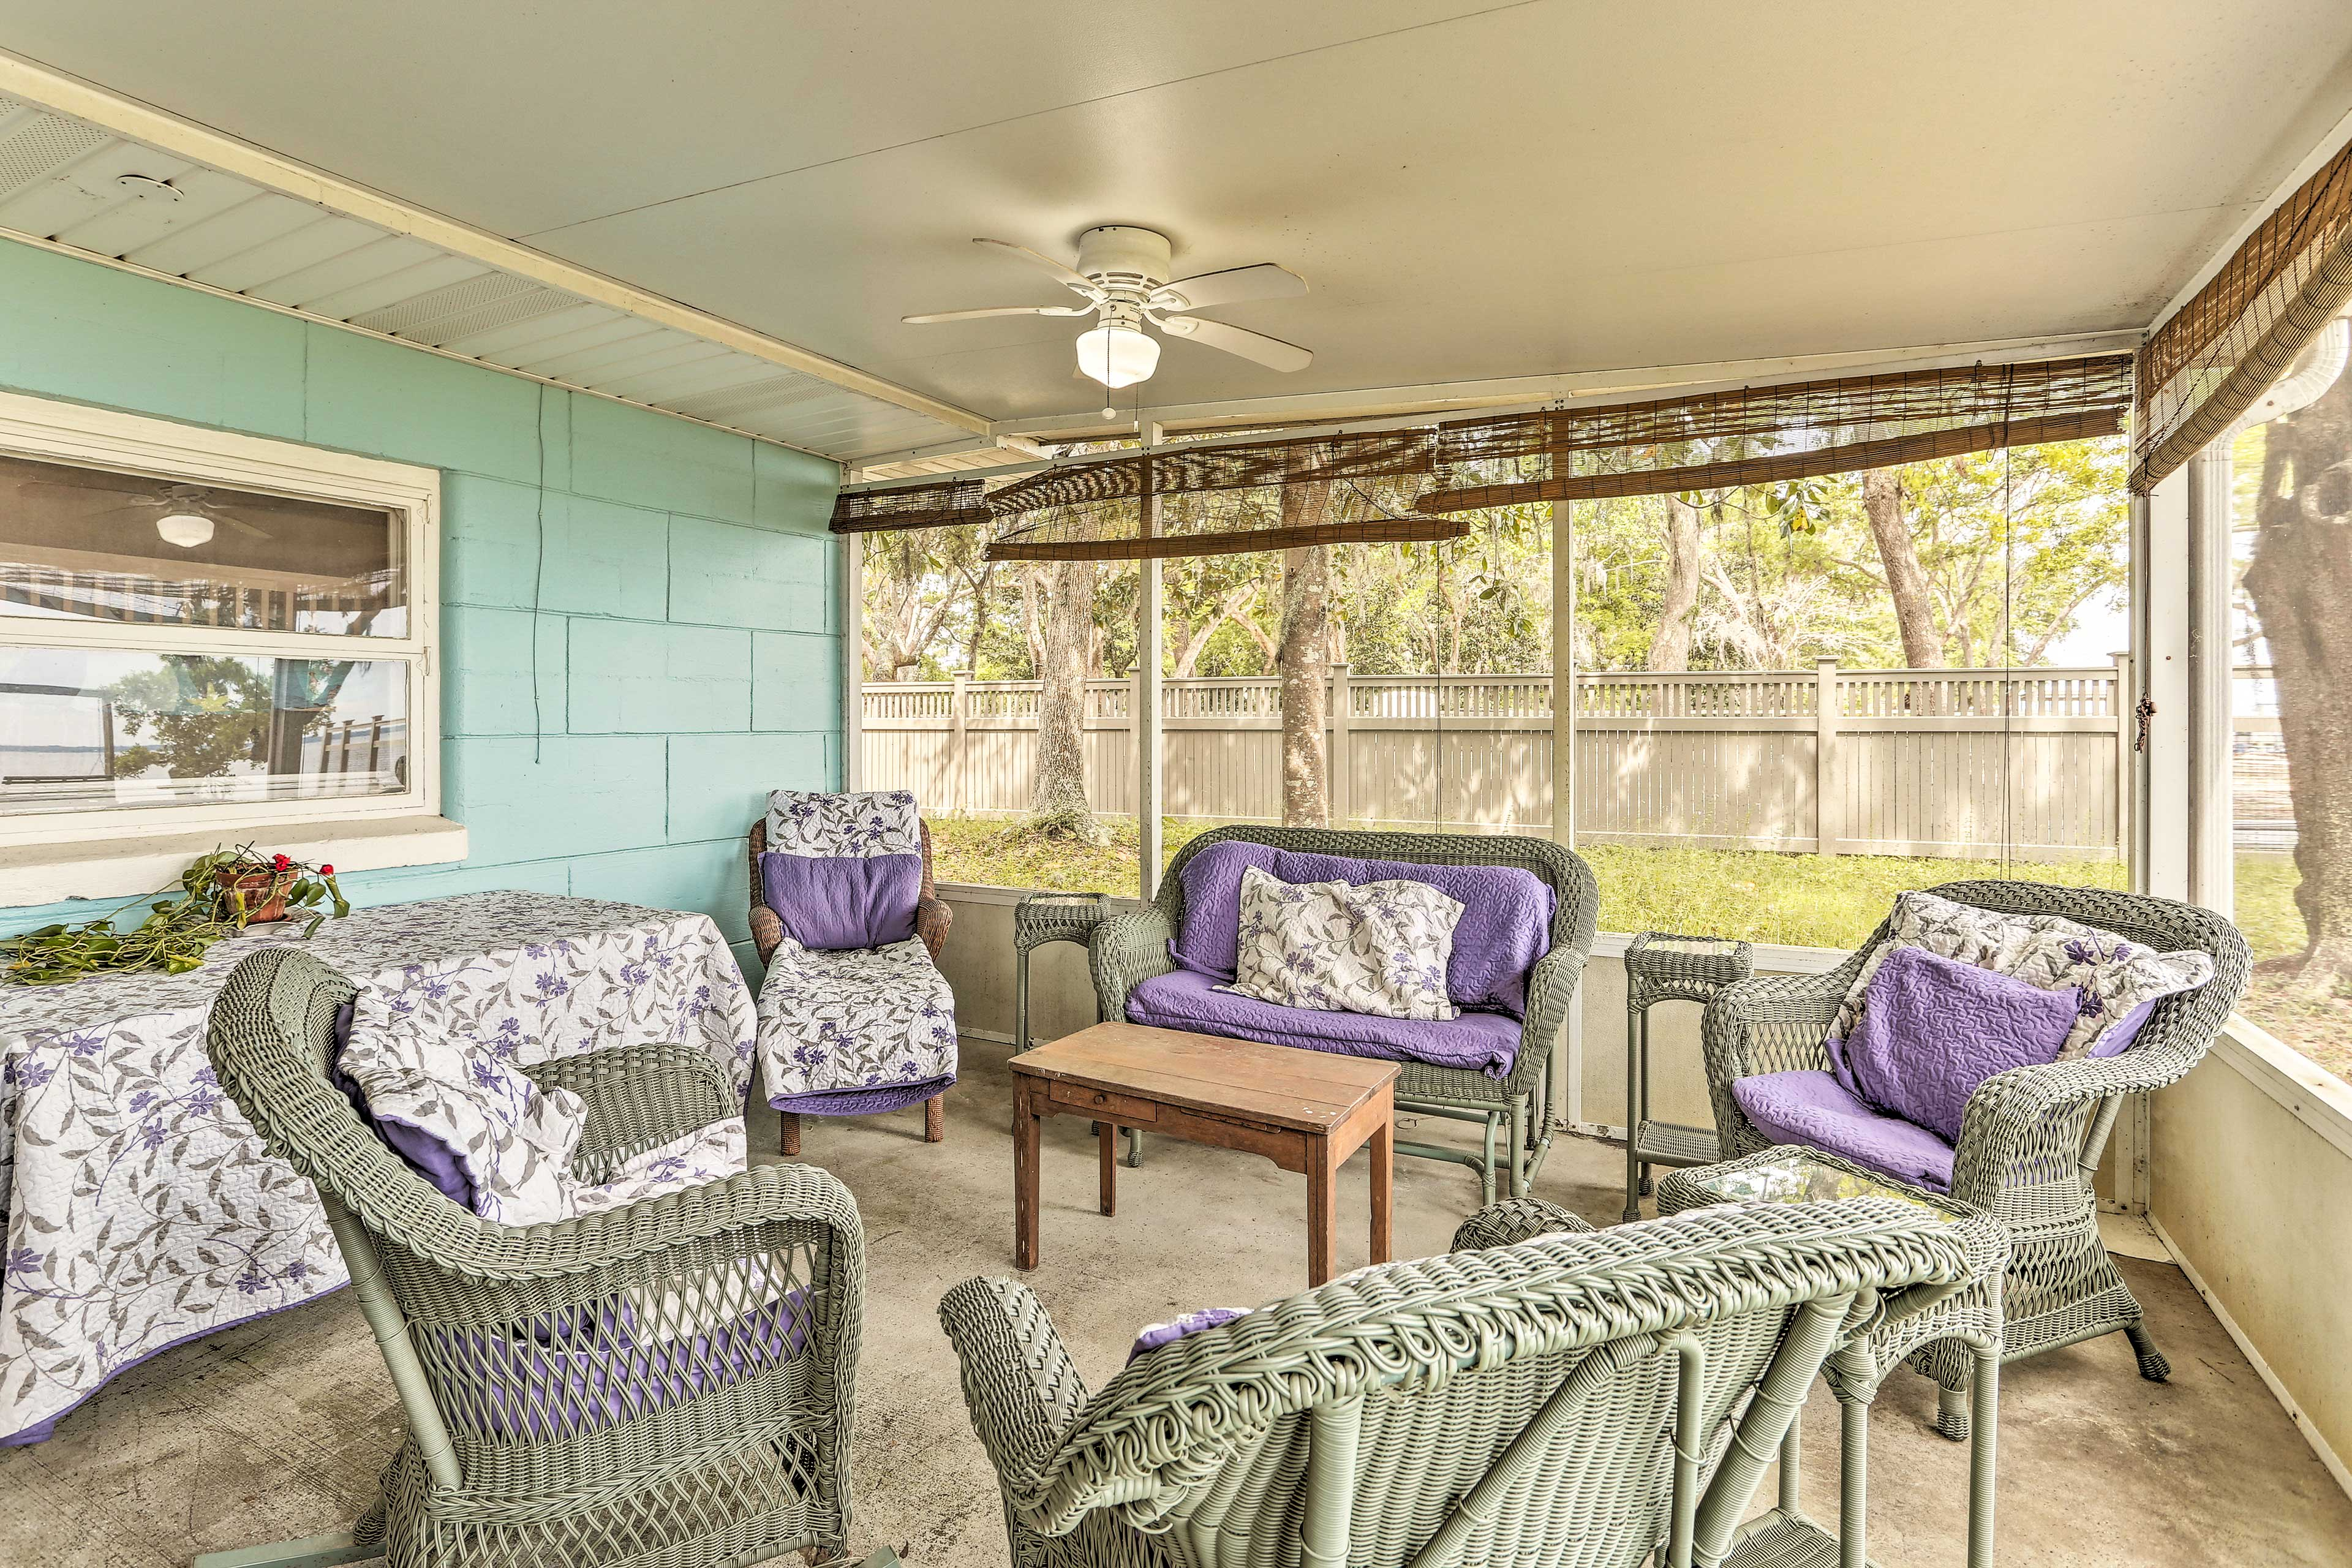 Enjoy a breeze on the screened porch.